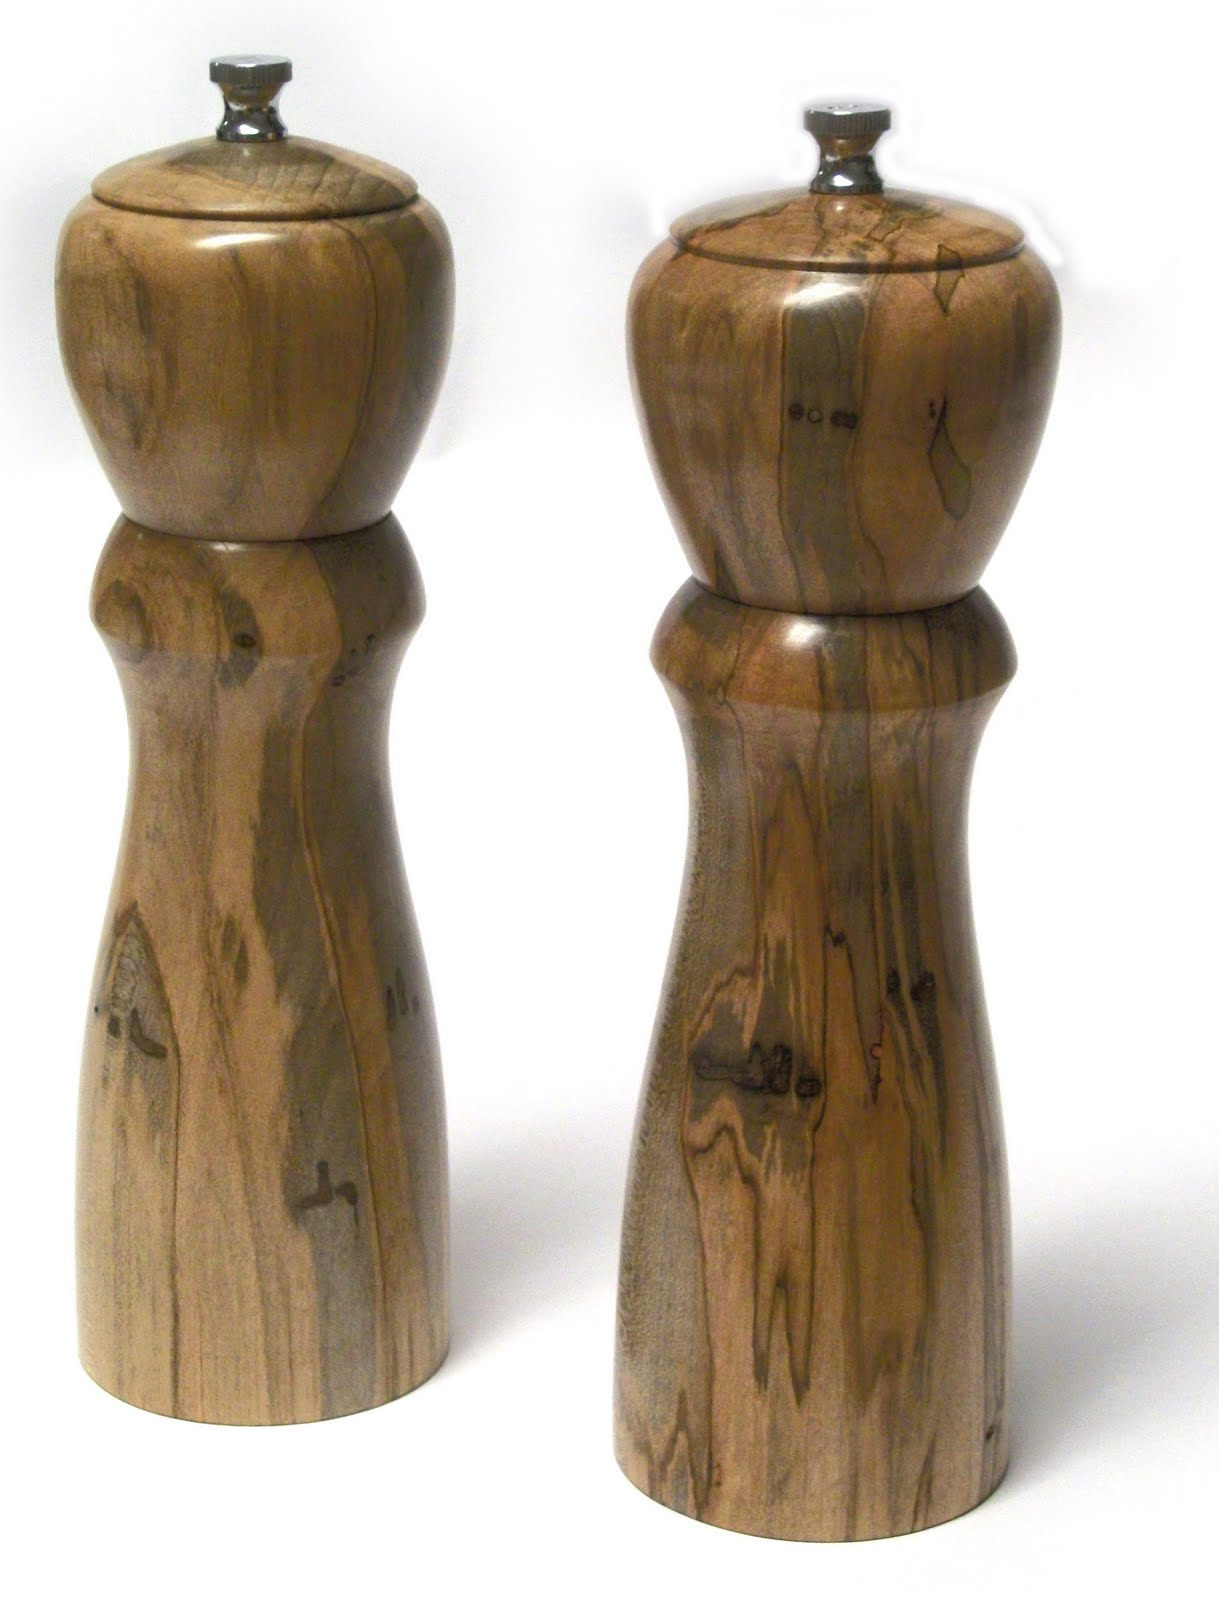 Mikes Pepper Mills By Design